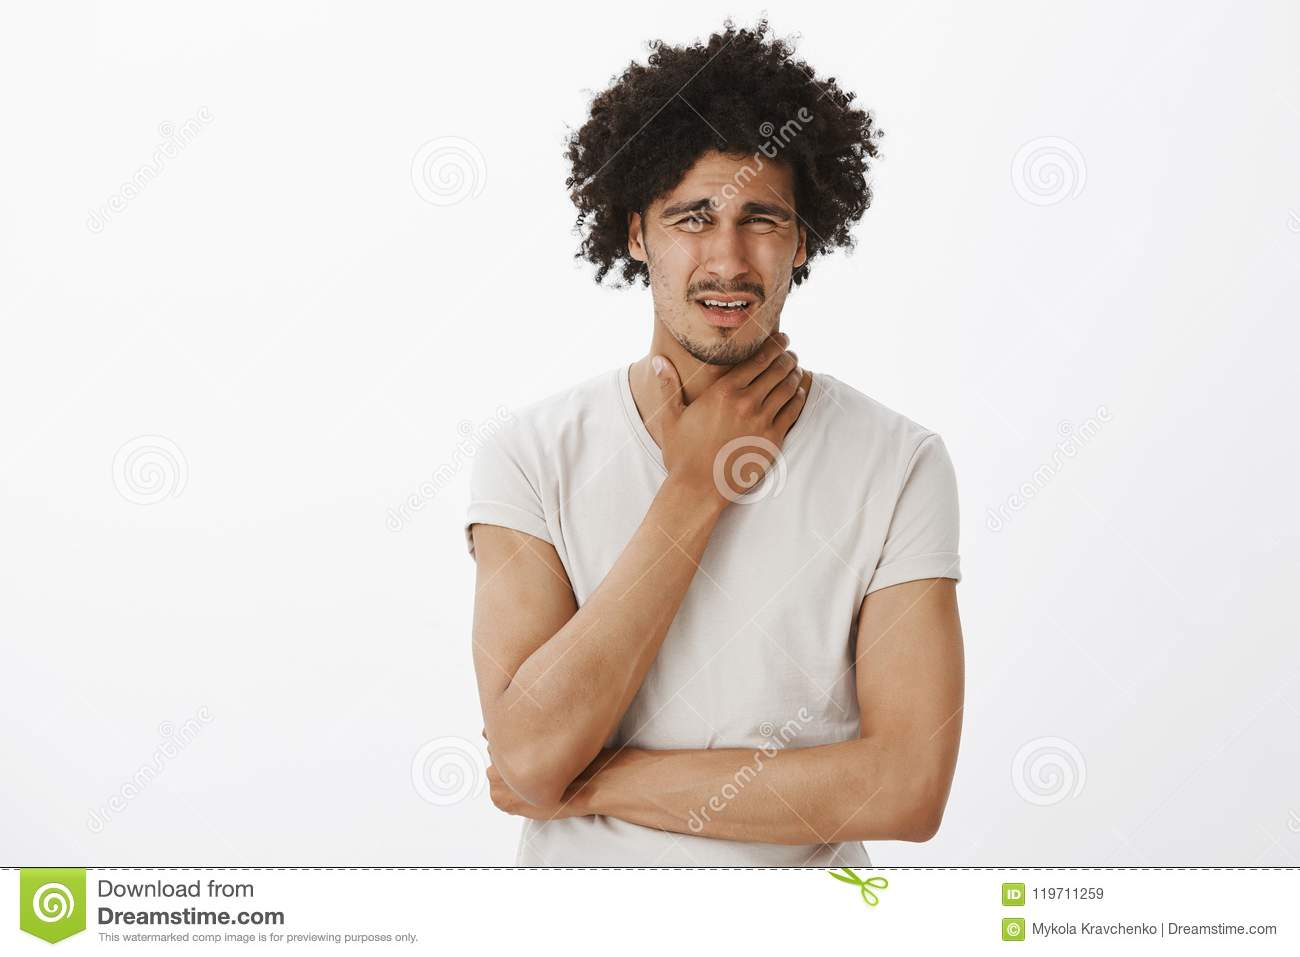 Guy feeling pain in throat, catching cold, frowning and grimacing from painful feeling, rubbing neck, standing intense